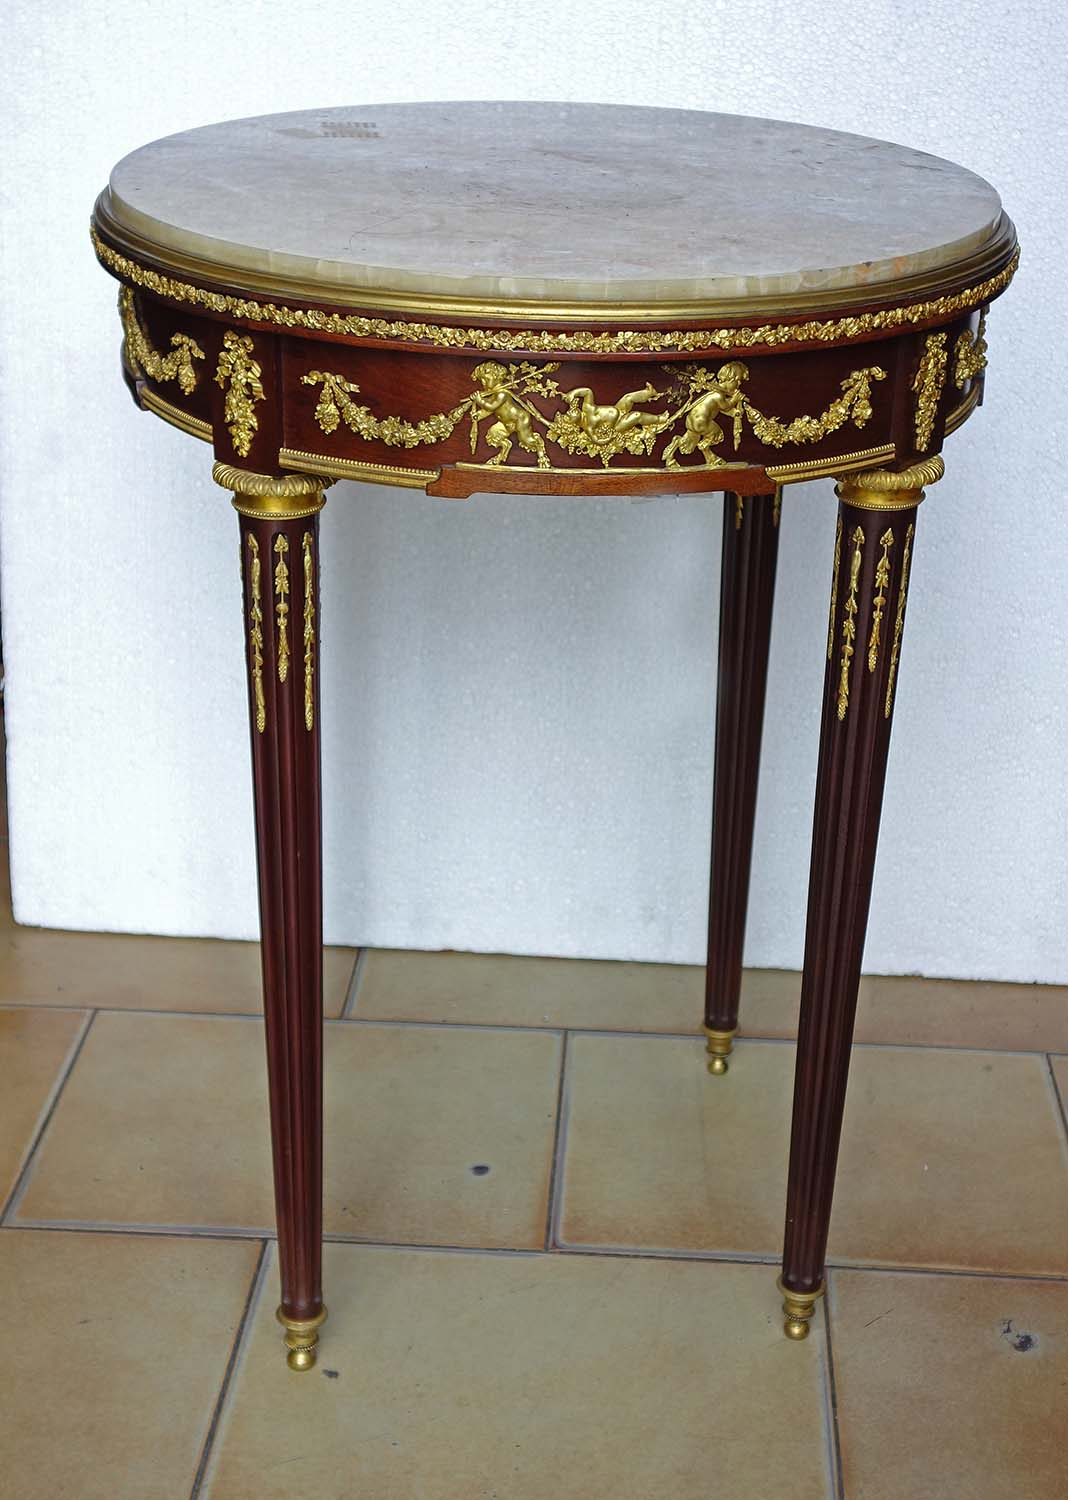 A French Louis Xvi Style Gany And Gilt Bronze Round Table With Marble Top